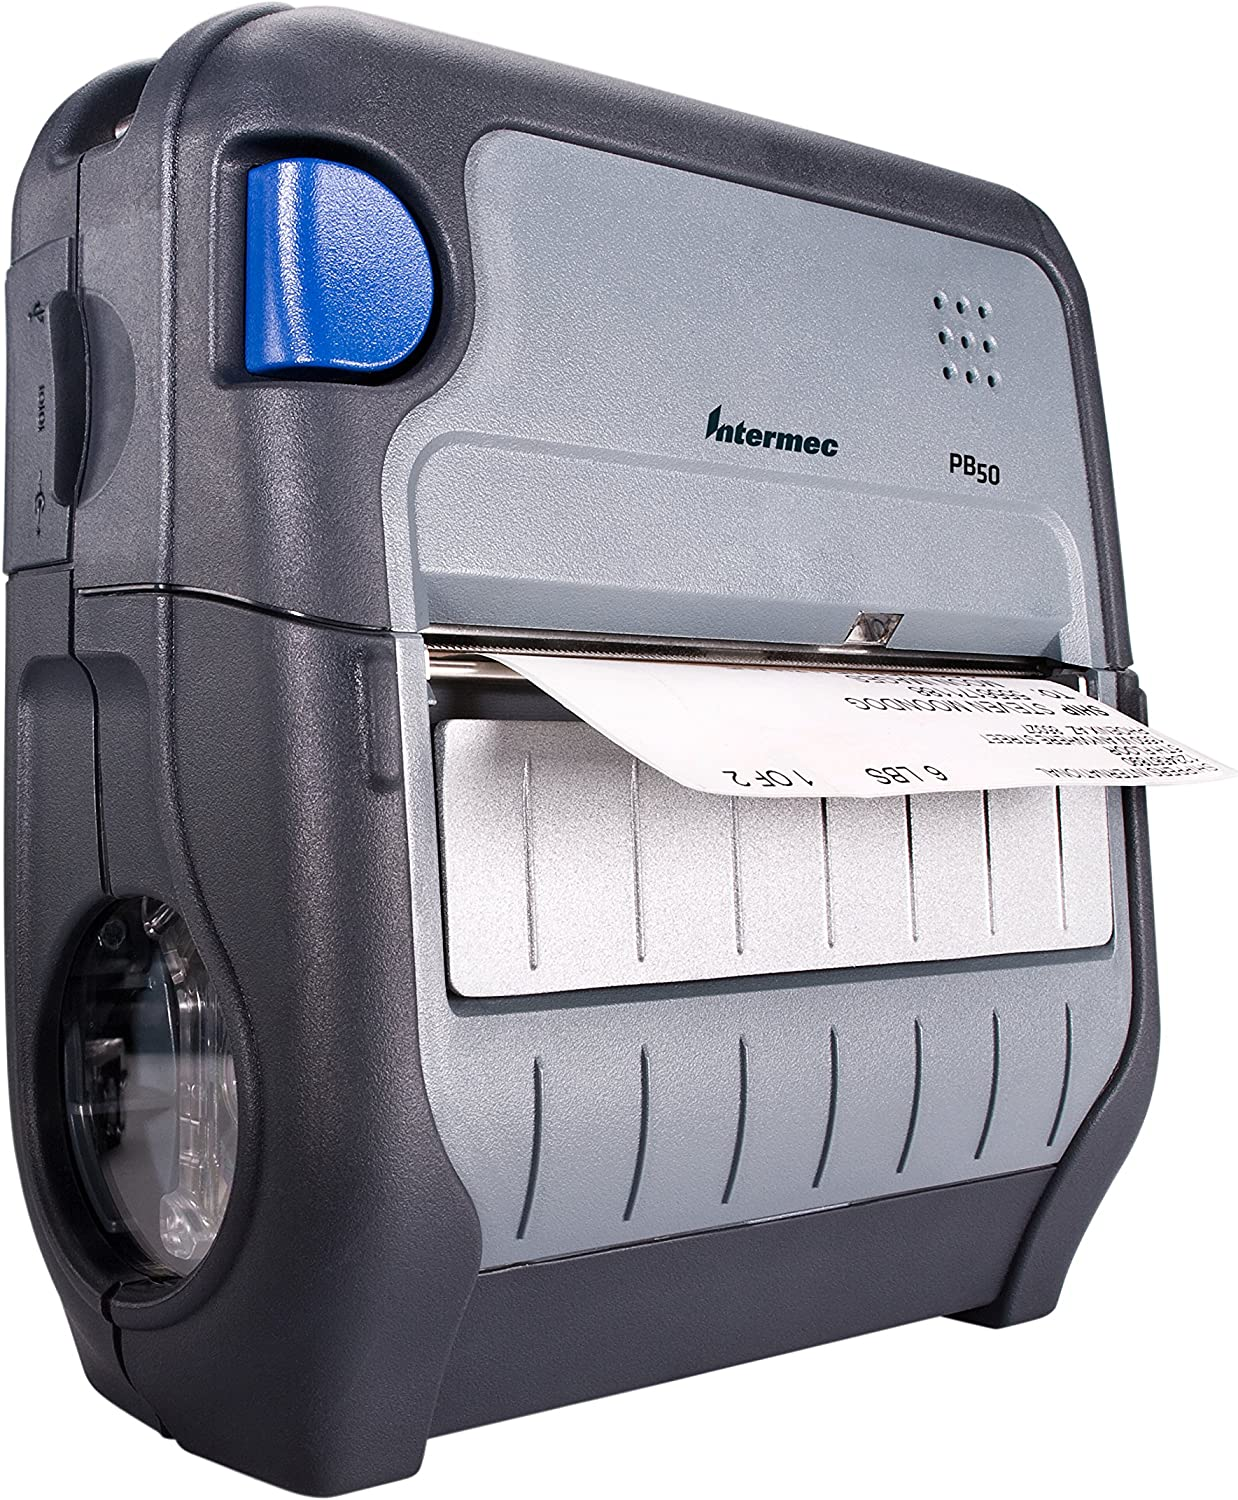 Honeywell Label Printer - Thermal Paper - Roll (4.4 in) - 203 dpi - up to 240 inch/min - USB 2.0, Serial, Wi-Fi